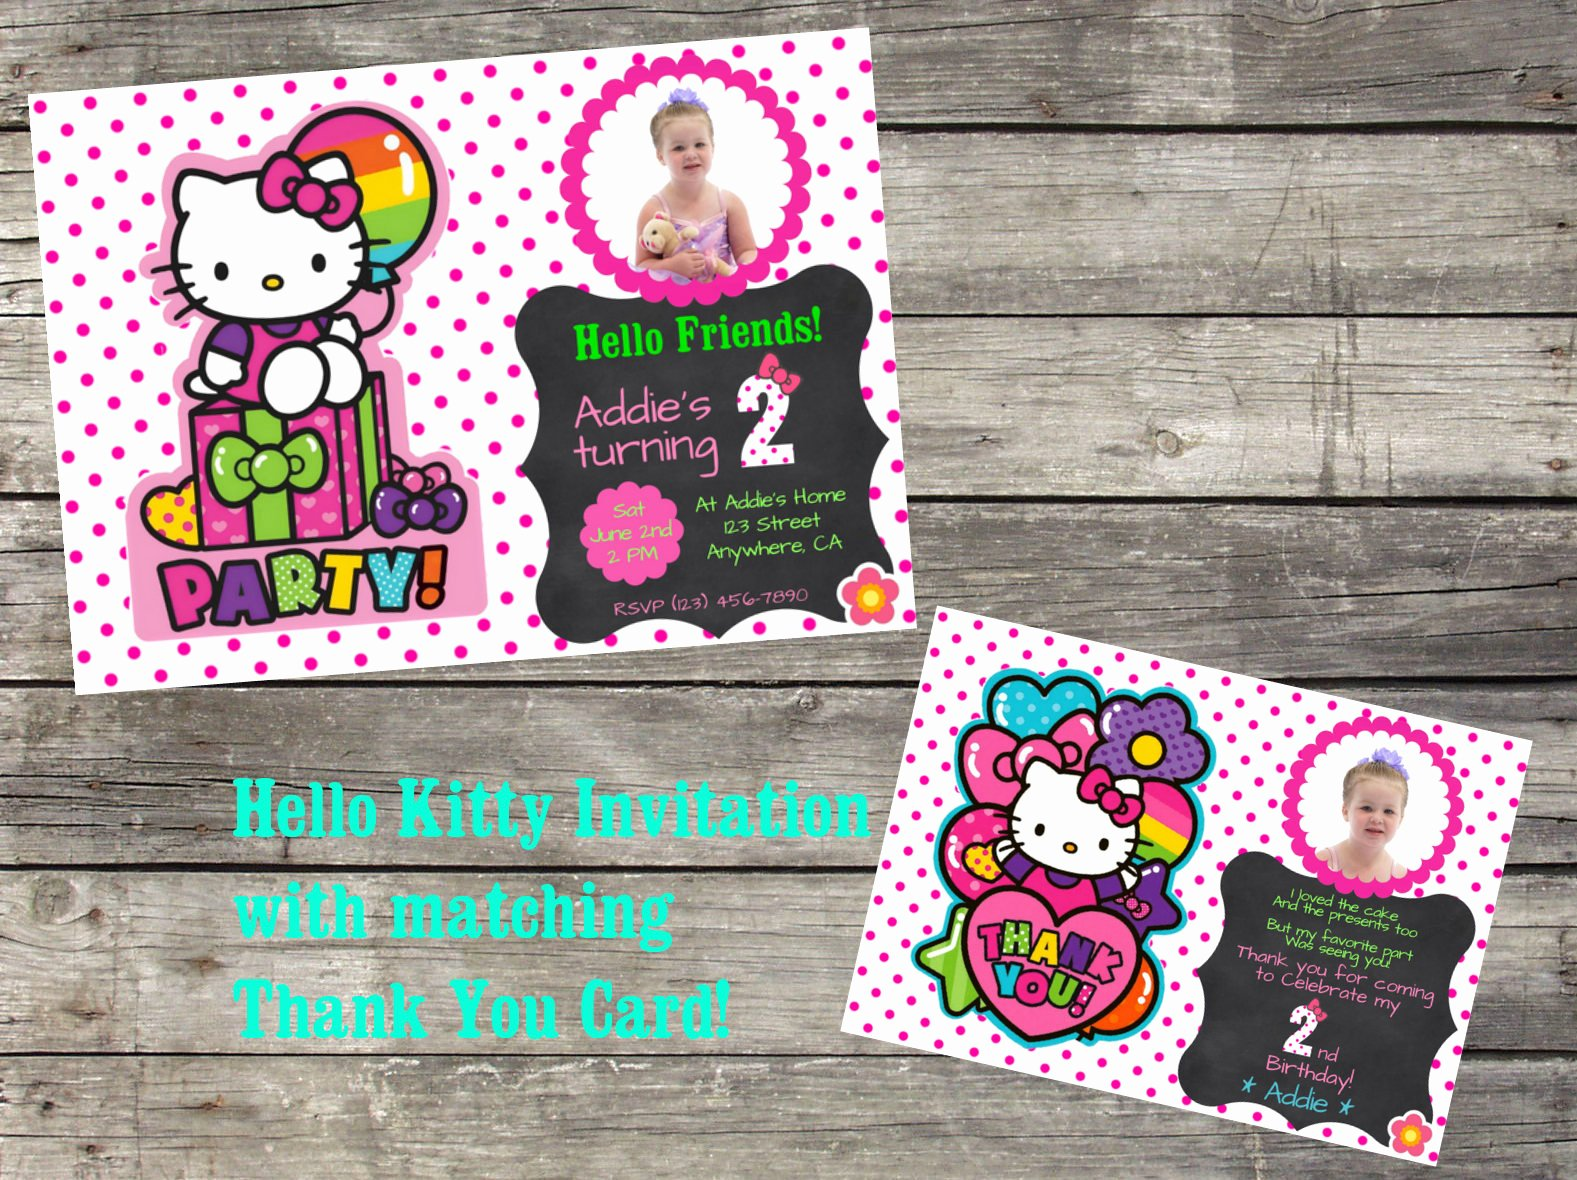 Personalized Hello Kitty Birthday Invitations Beautiful Personalized Hello Kitty Birthday Invitation & Thank You